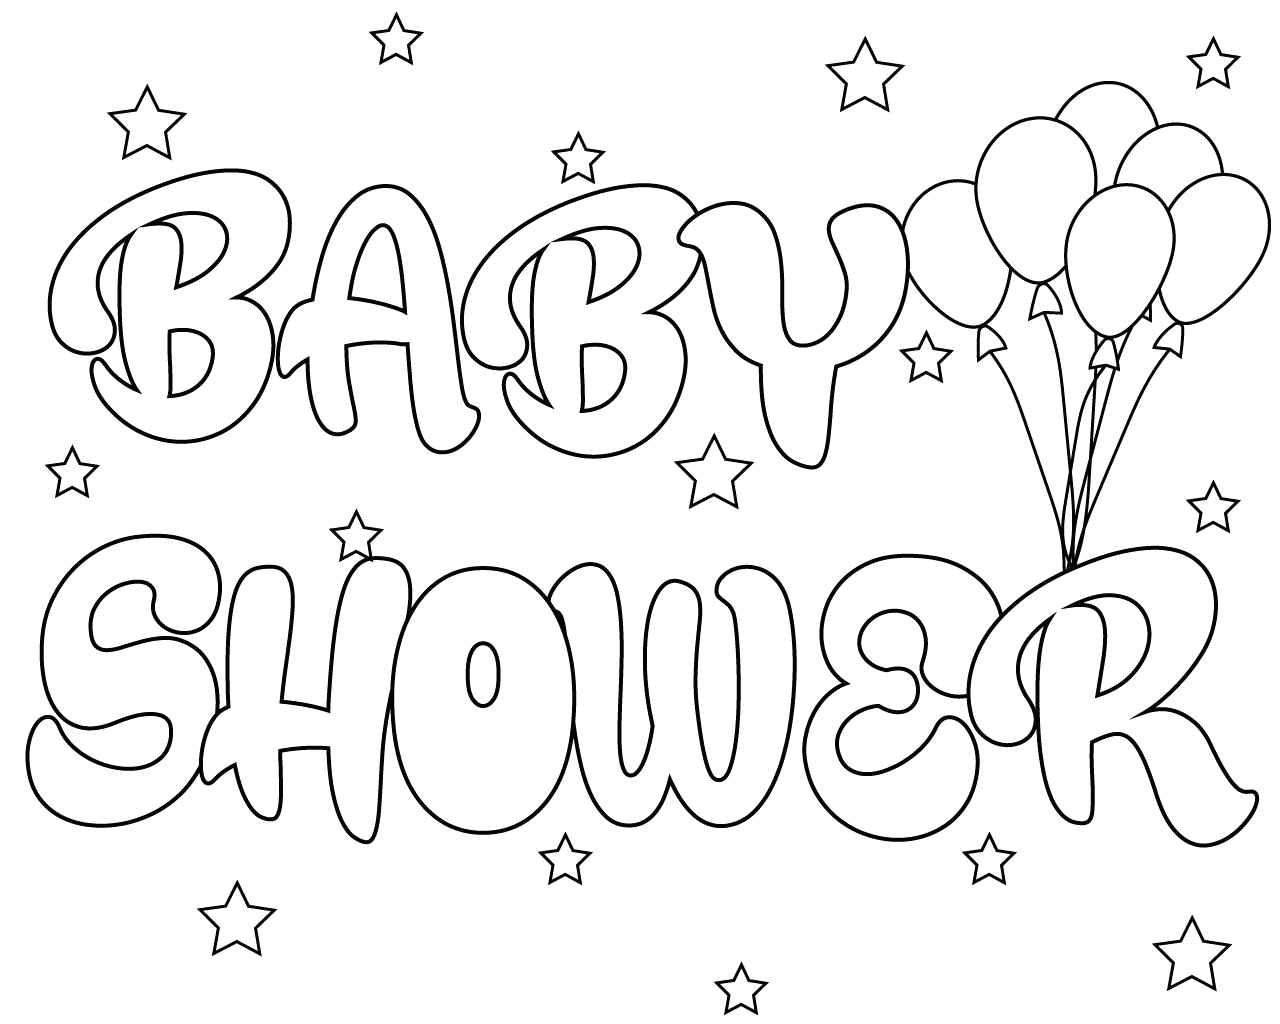 Free Printable Alphabet Coloring Pages for Baby Shower Baby Shower Coloring Pages Print